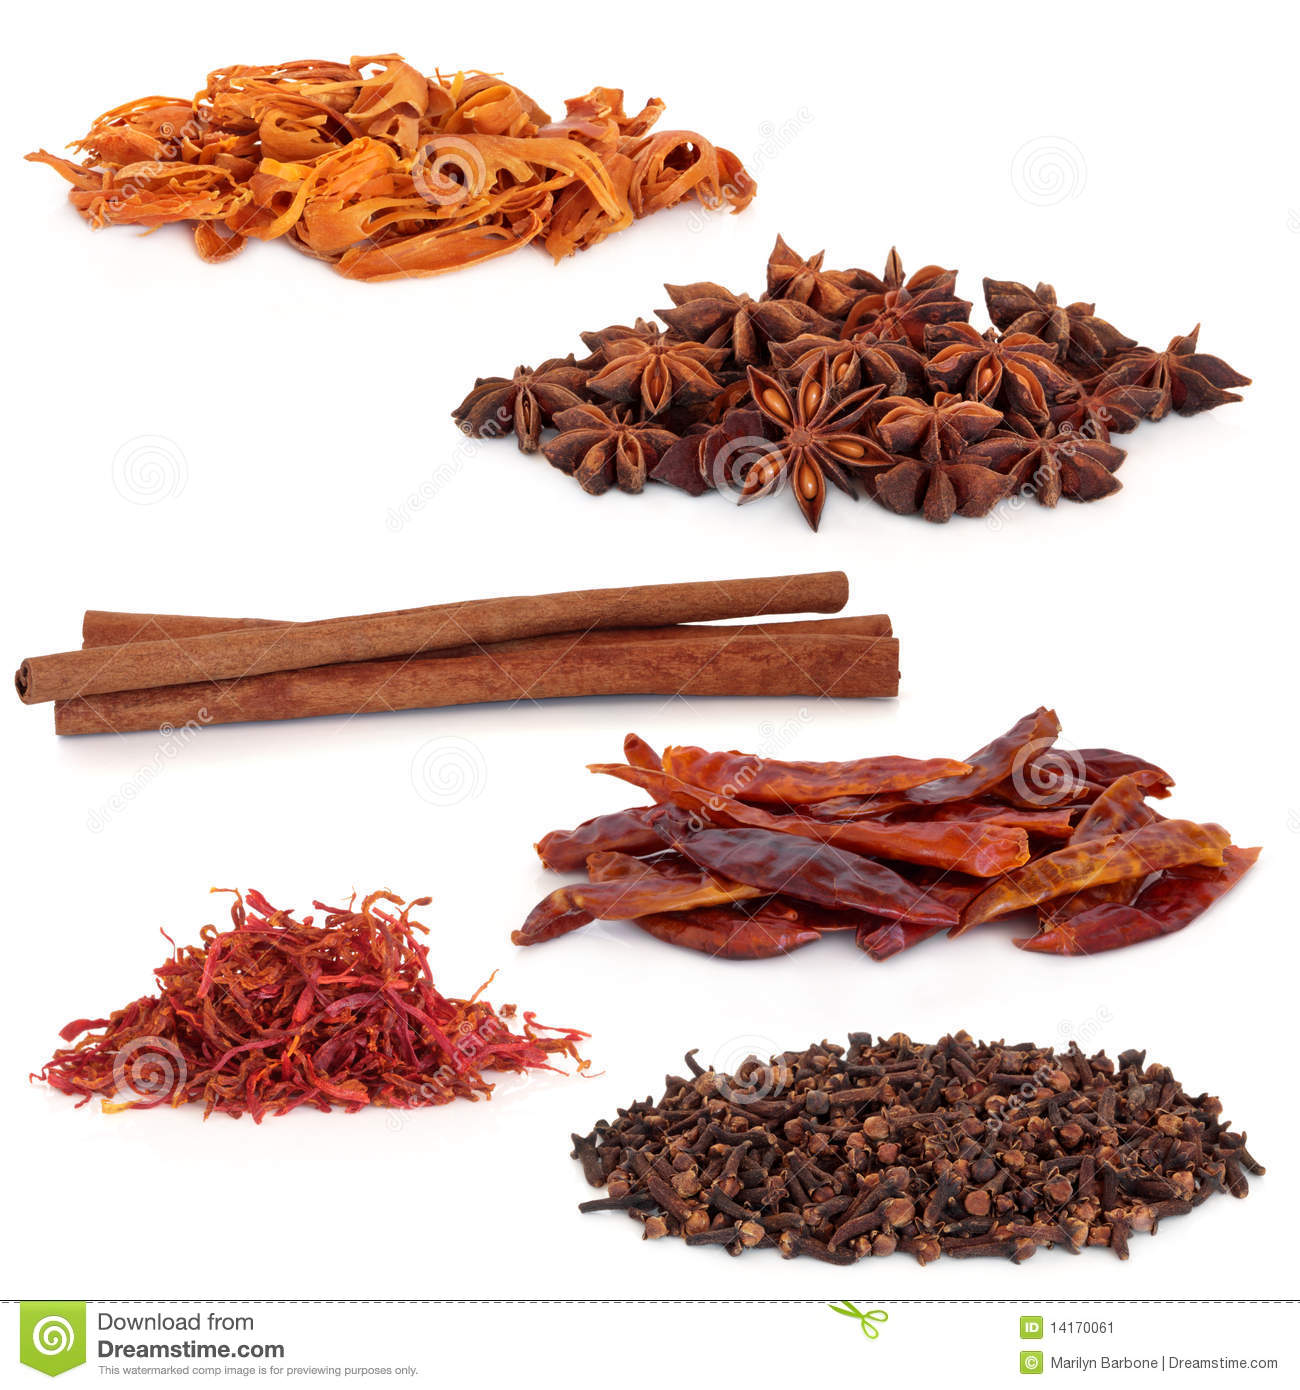 Clip Art Of Tea And Spices Clipart.